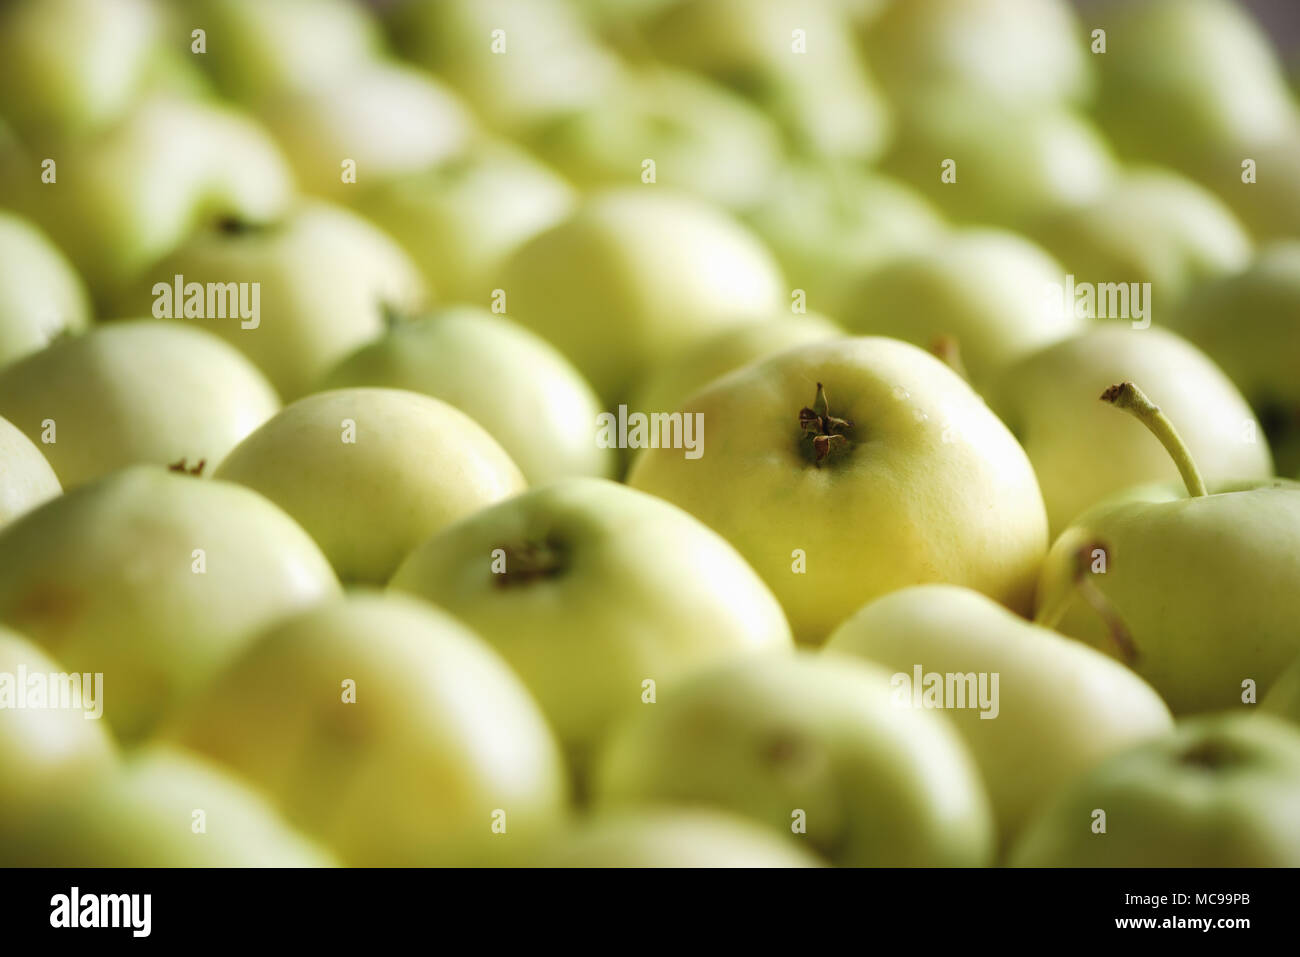 Top view of green apple. Background, concept, copy space, macro - Stock Image